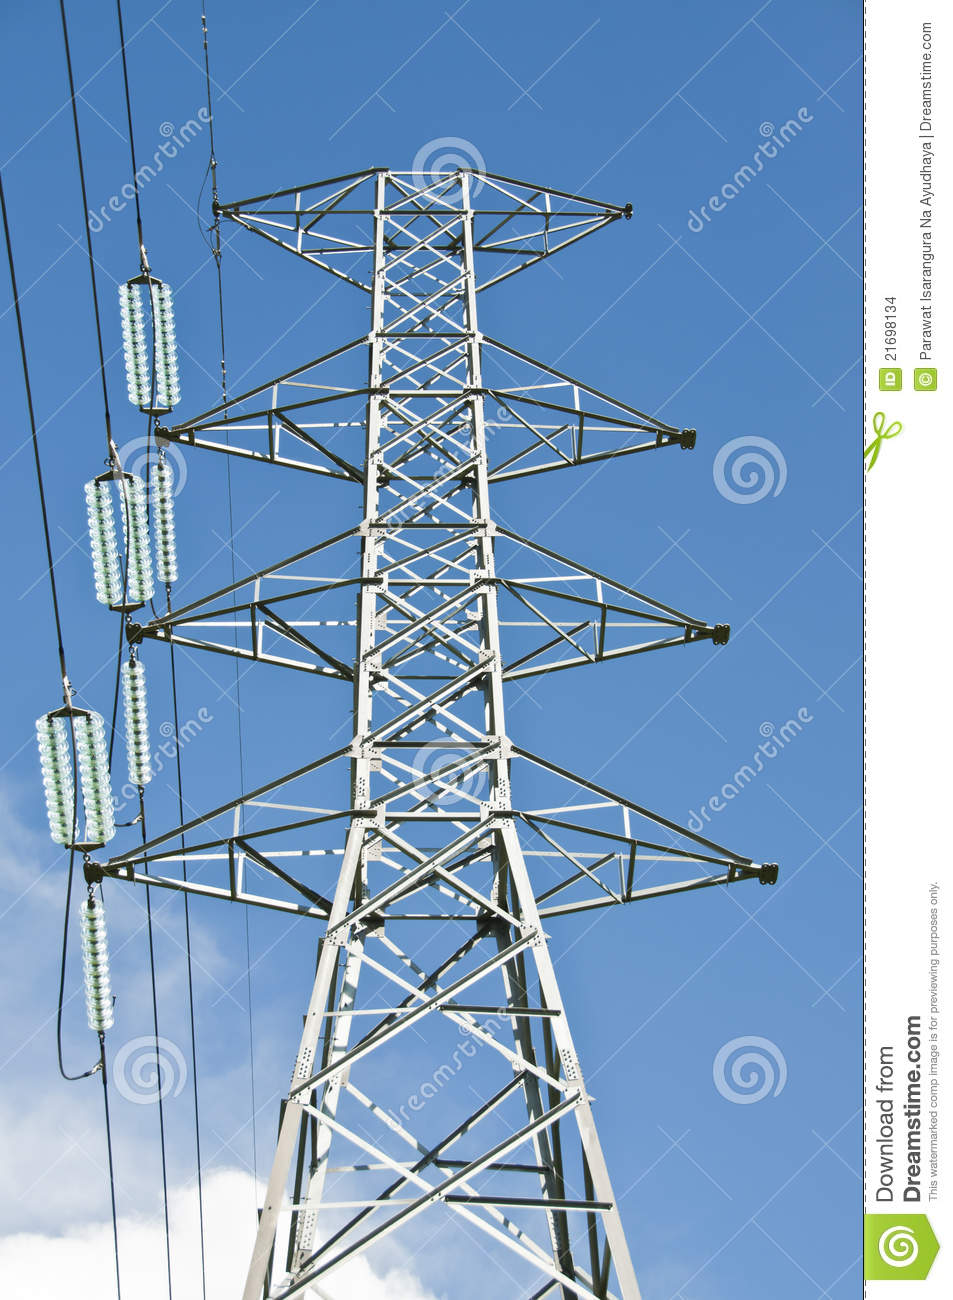 Pageview2 besides 27725661 likewise Panel Solar En La Luz Del Sol 34537 additionally Enterprise Gis For Distribution Loss Reduction Rev1 Presentation together with Jubail. on transmission line towers